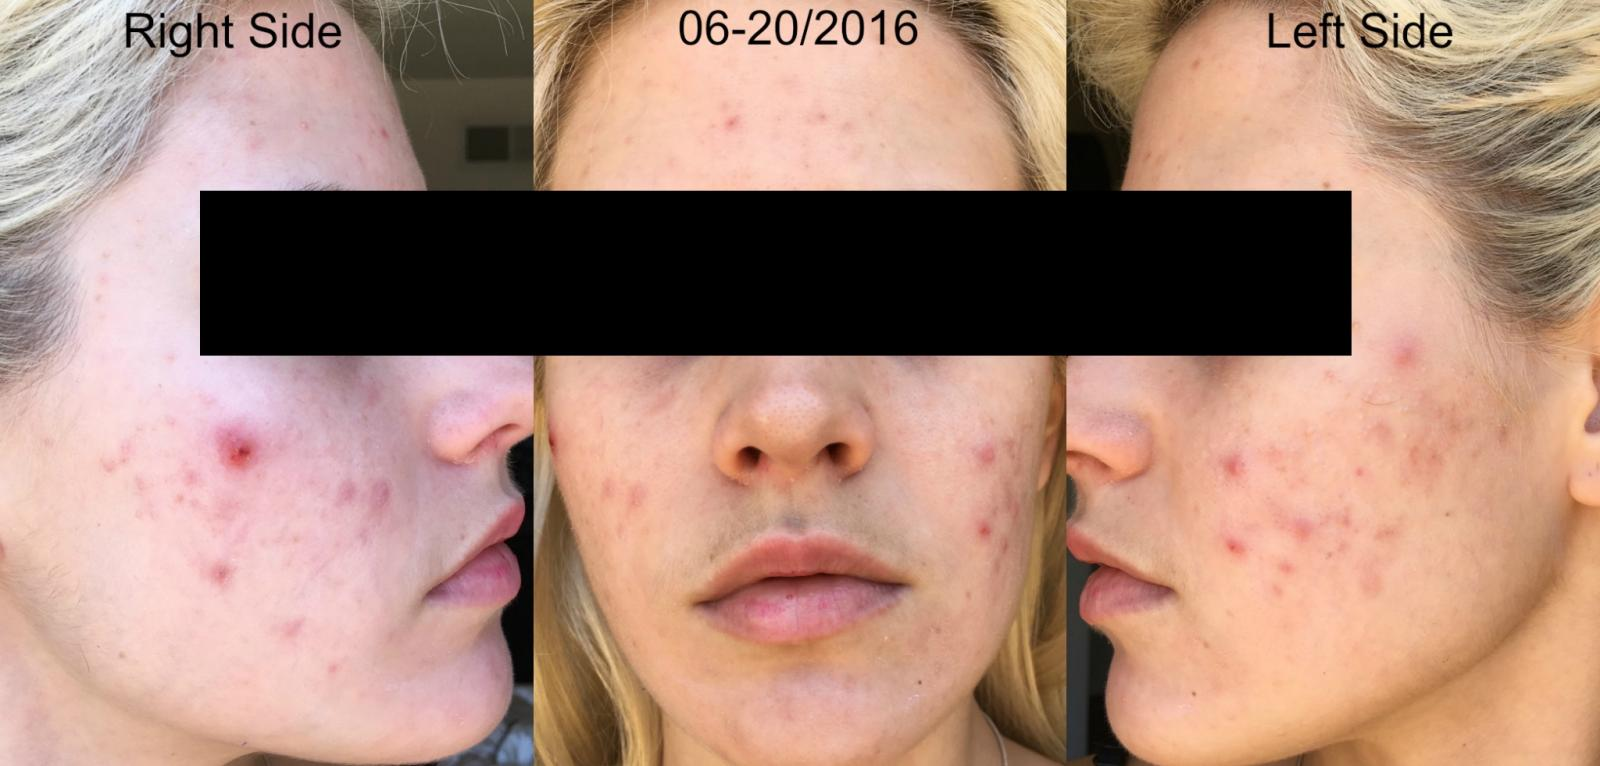 7 Weeks into Retin-A 0.08% and Aczone Regimen plus Doxycycline Week 2